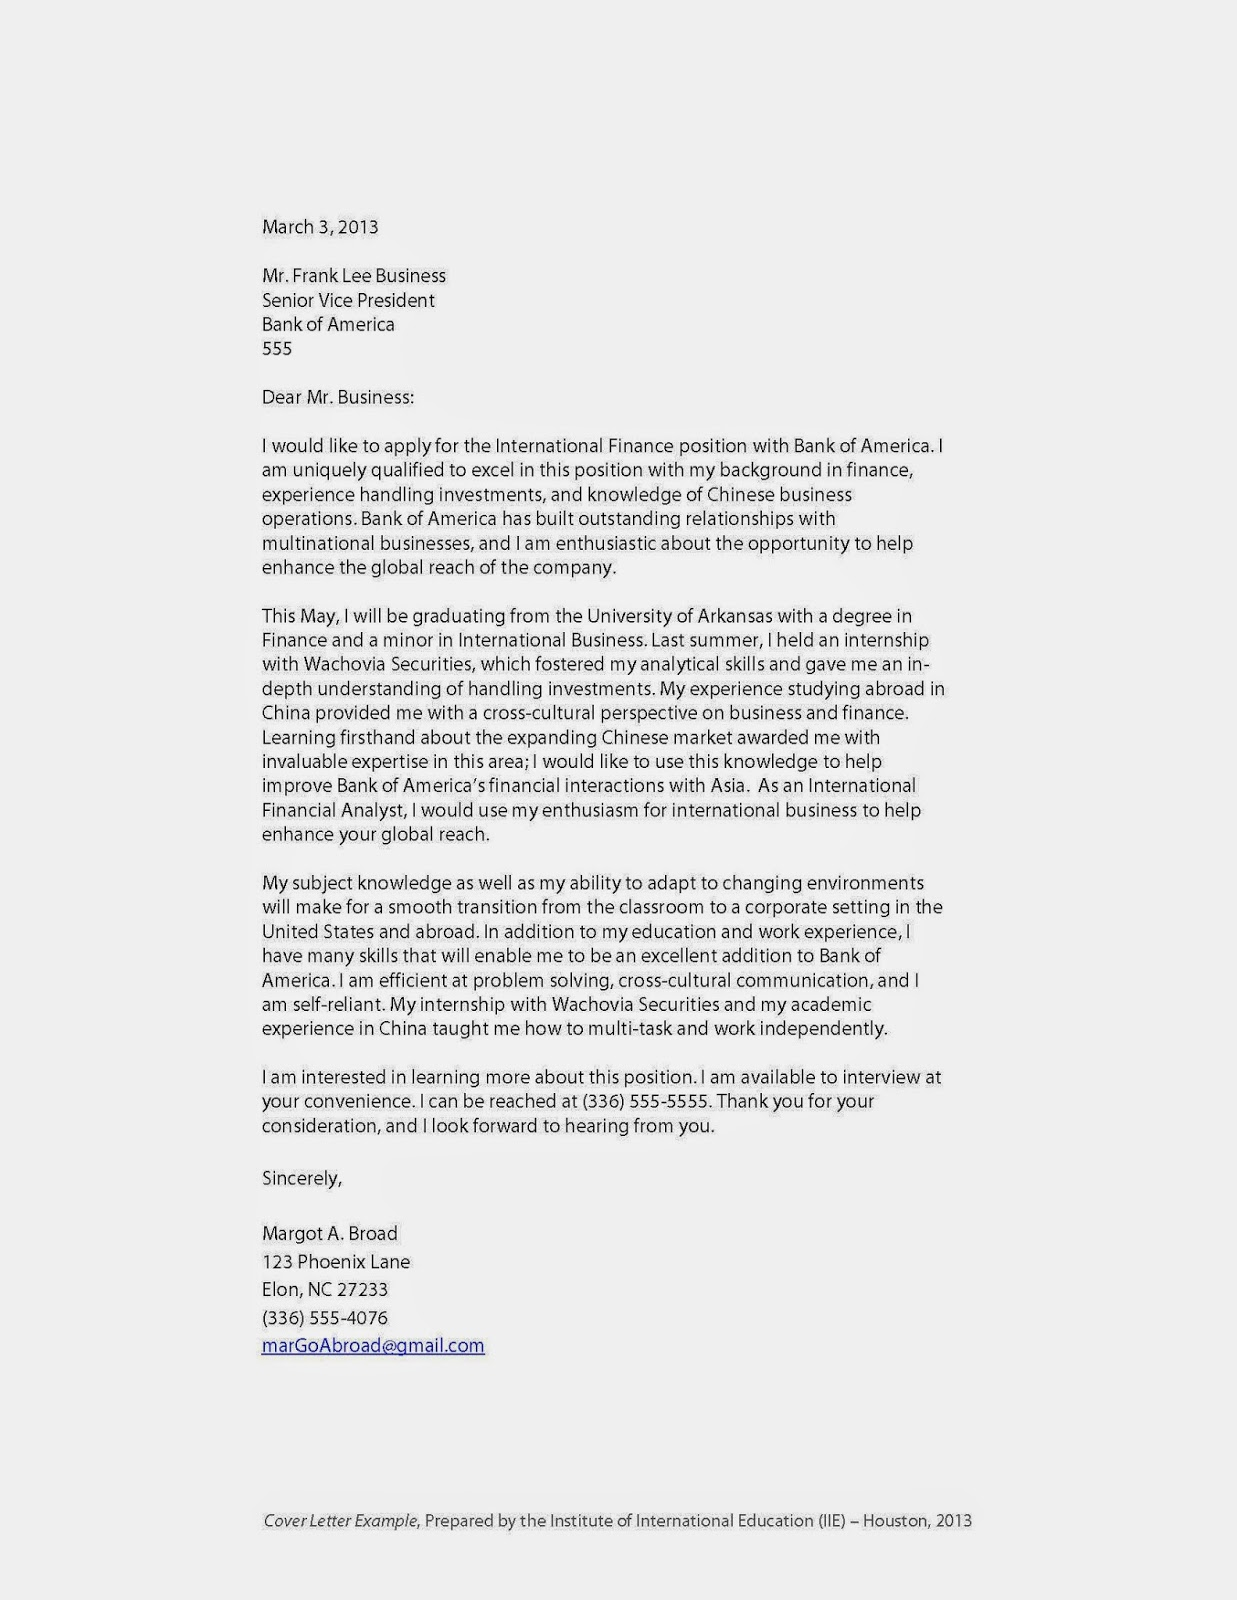 Motivational Letter For A Scholarship - Motivation letter